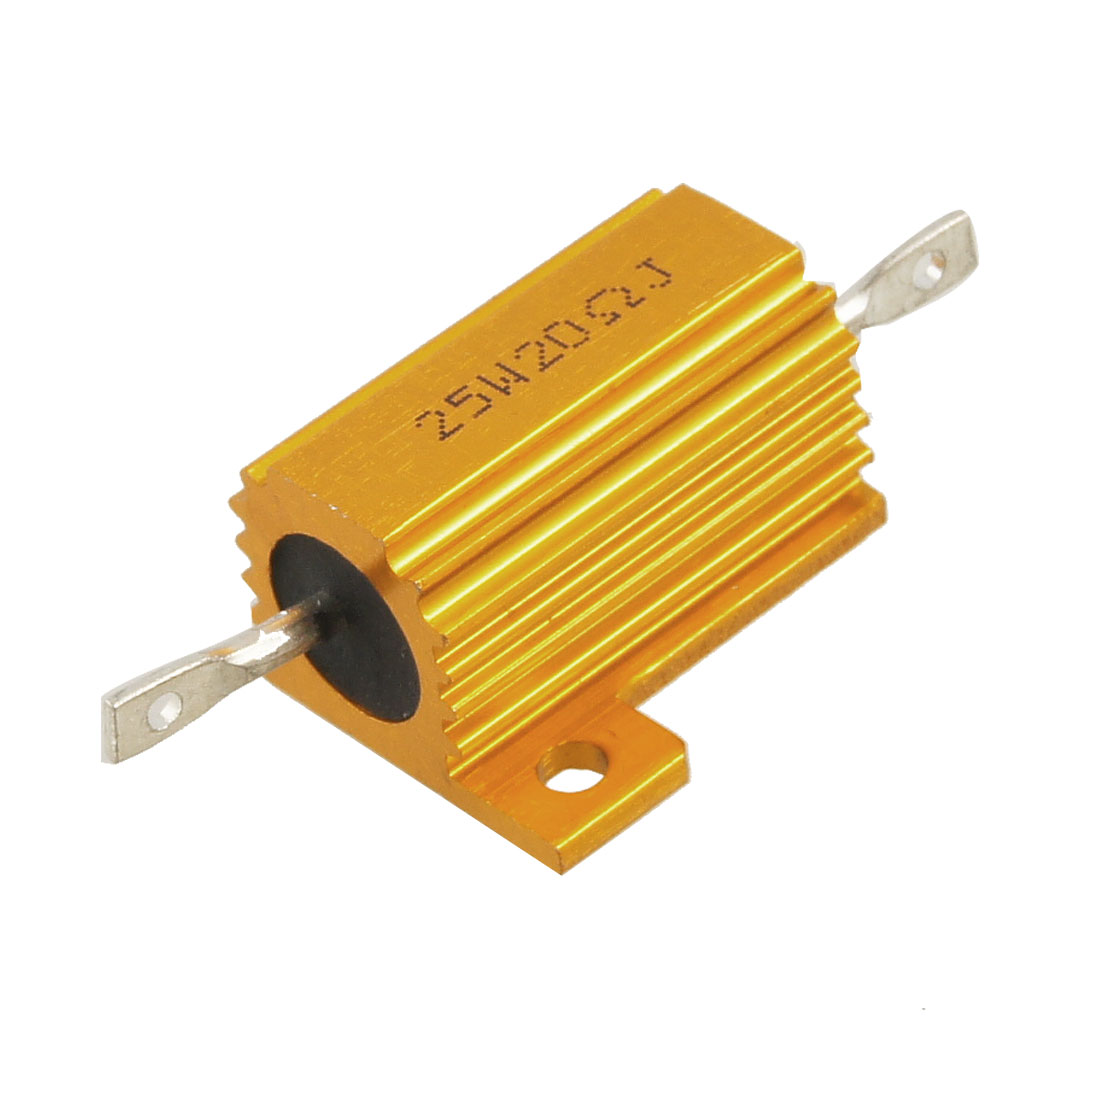 Gold Tone 25W 20 Ohm Chassis Mounted Aluminum Housed Resistor